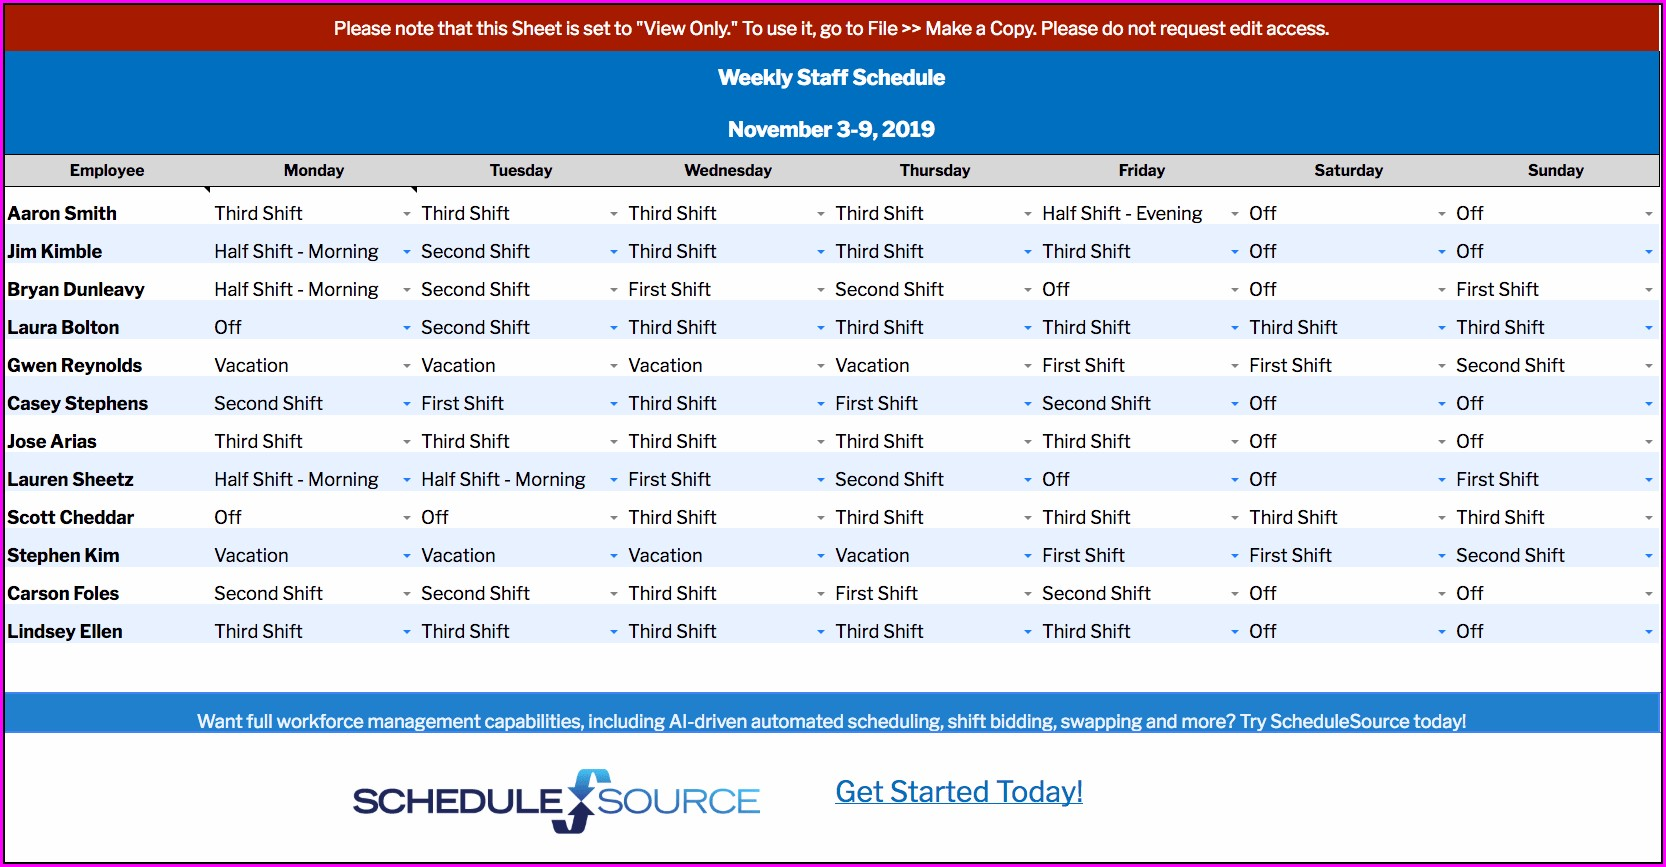 Weekly Staff Schedule Template Free